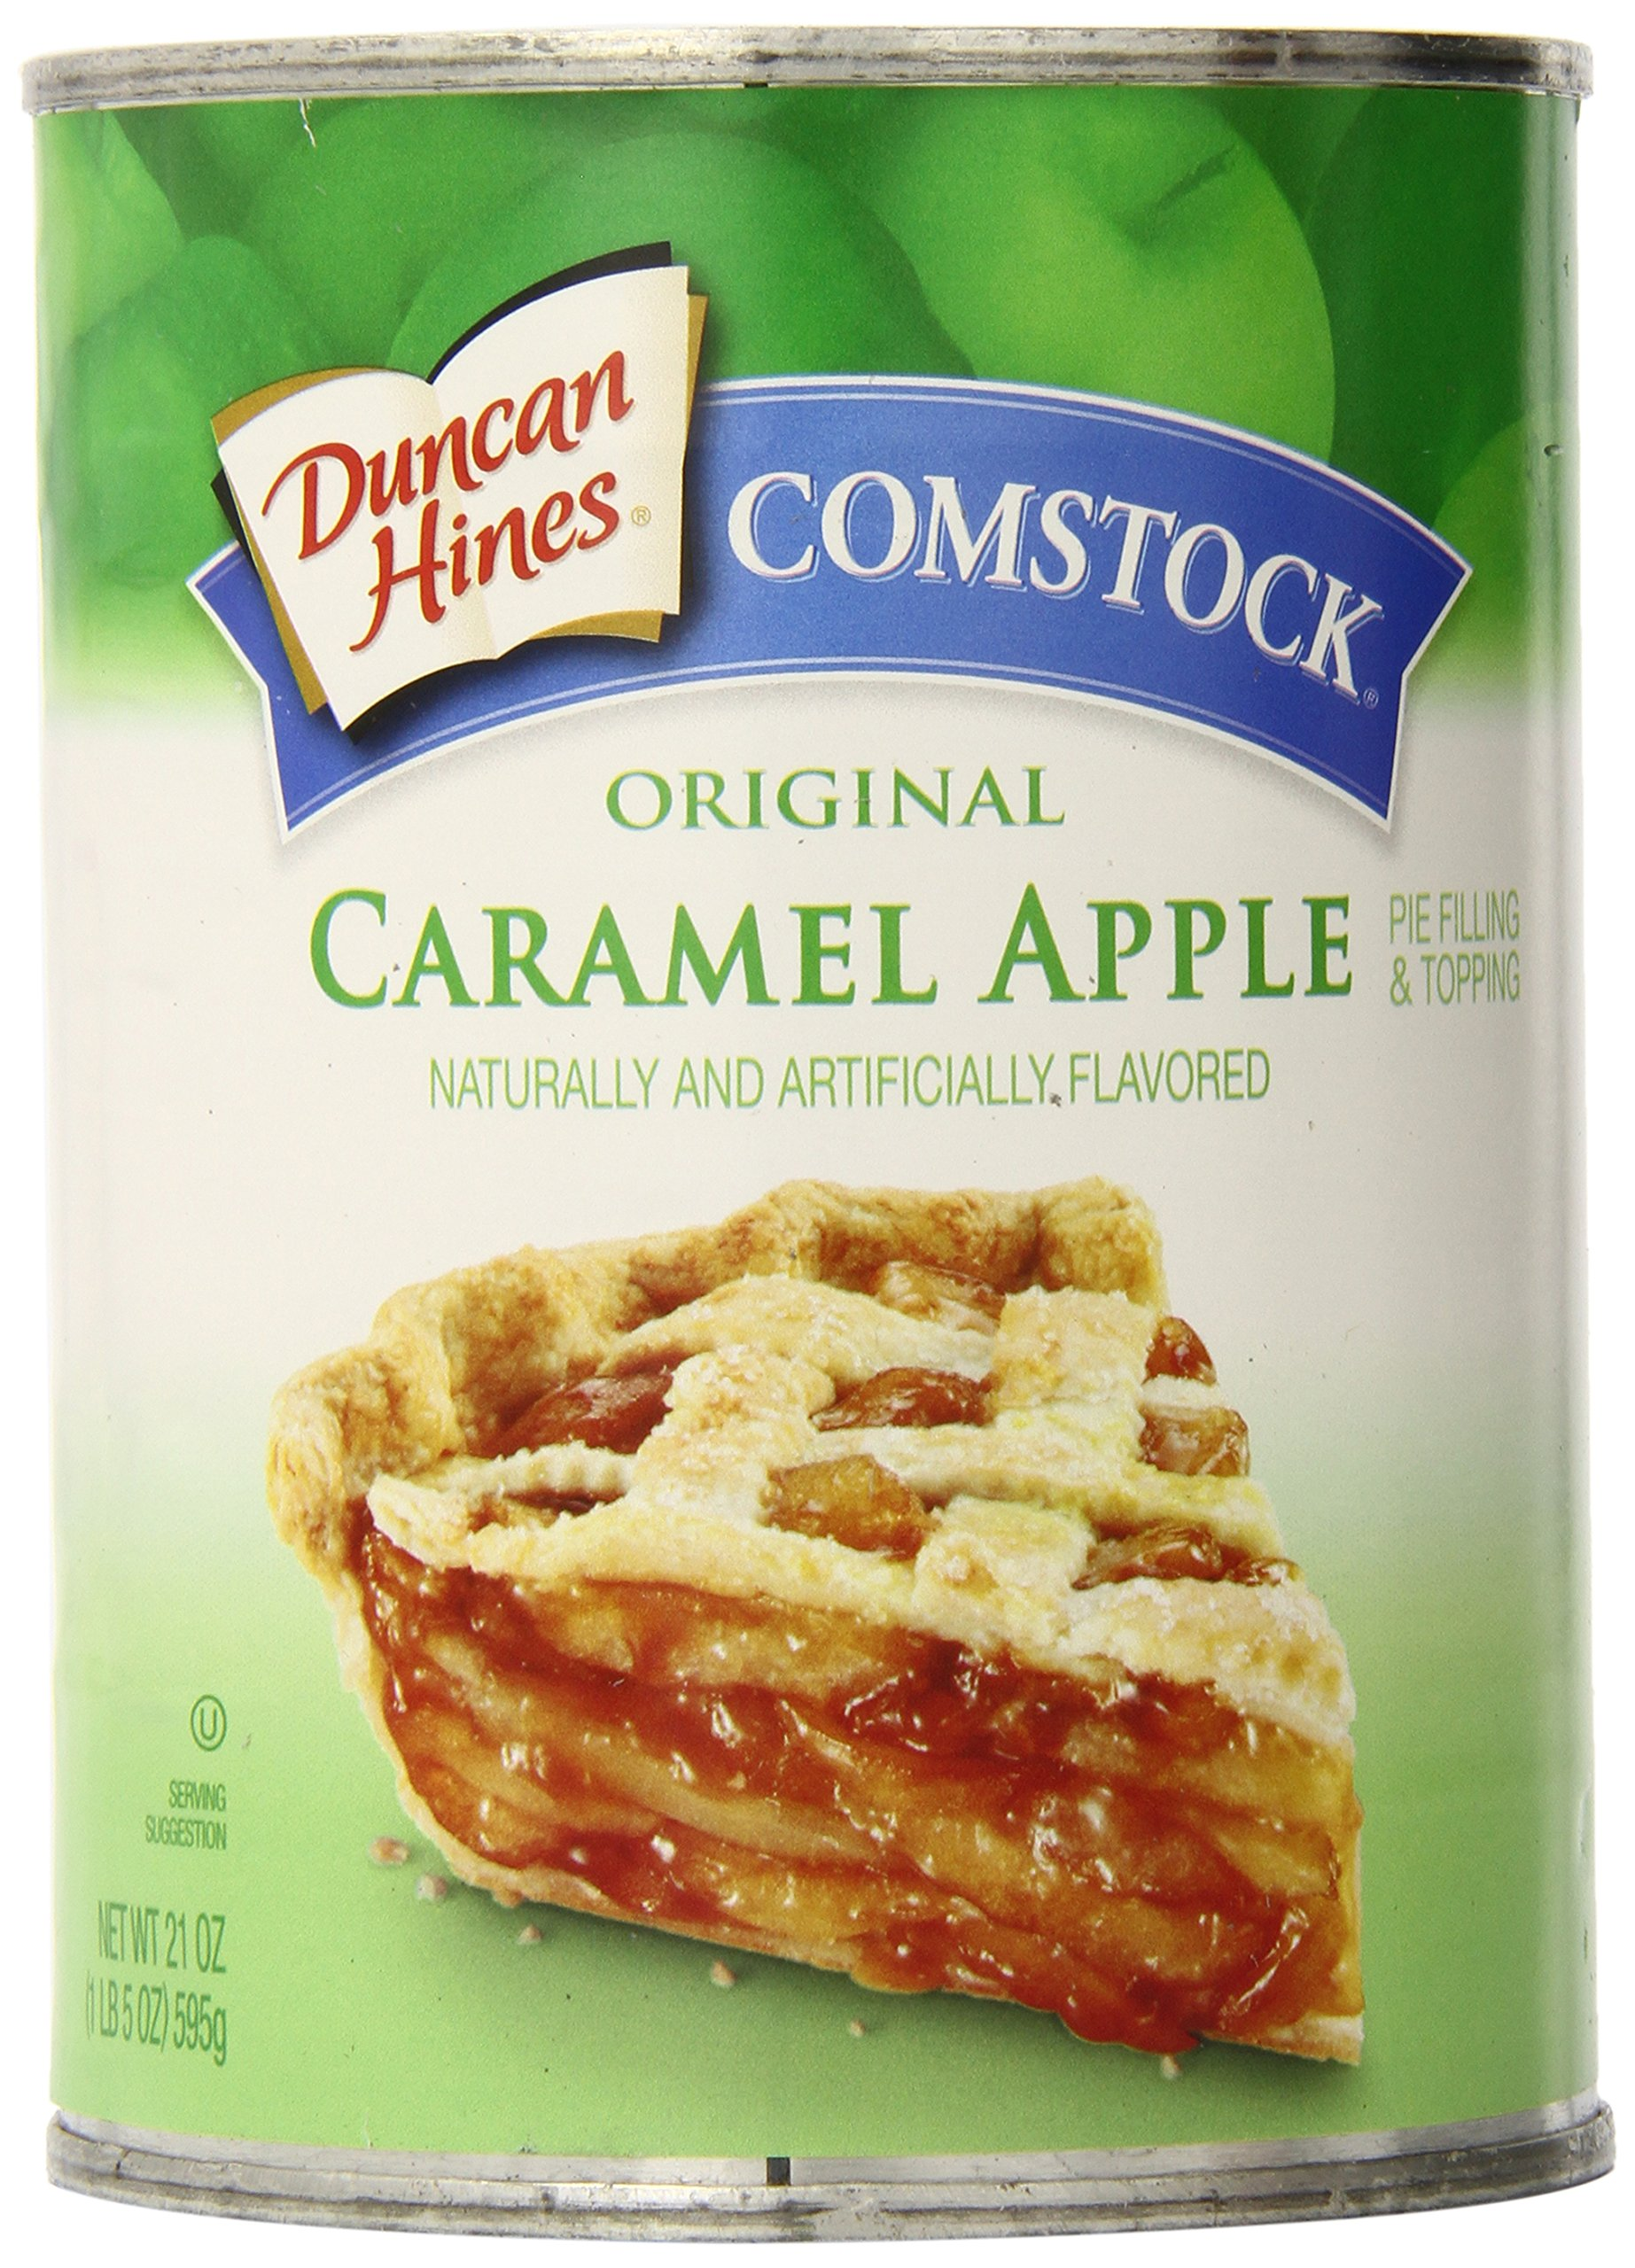 Comstock Original Pie Filling & Topping, Caramel Apple, 21 Ounce (Pack of 12) by Comstock (Image #1)